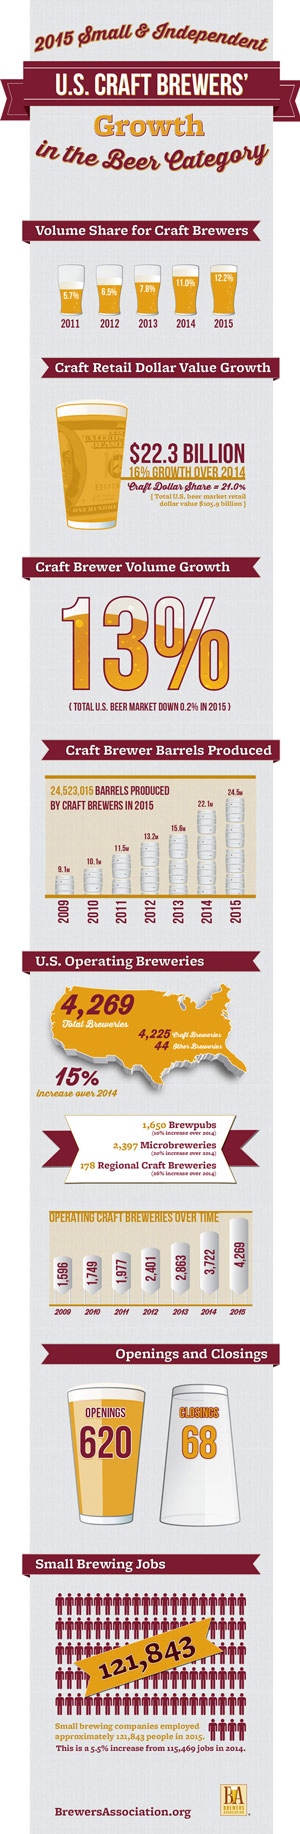 Craft Brewing 2015